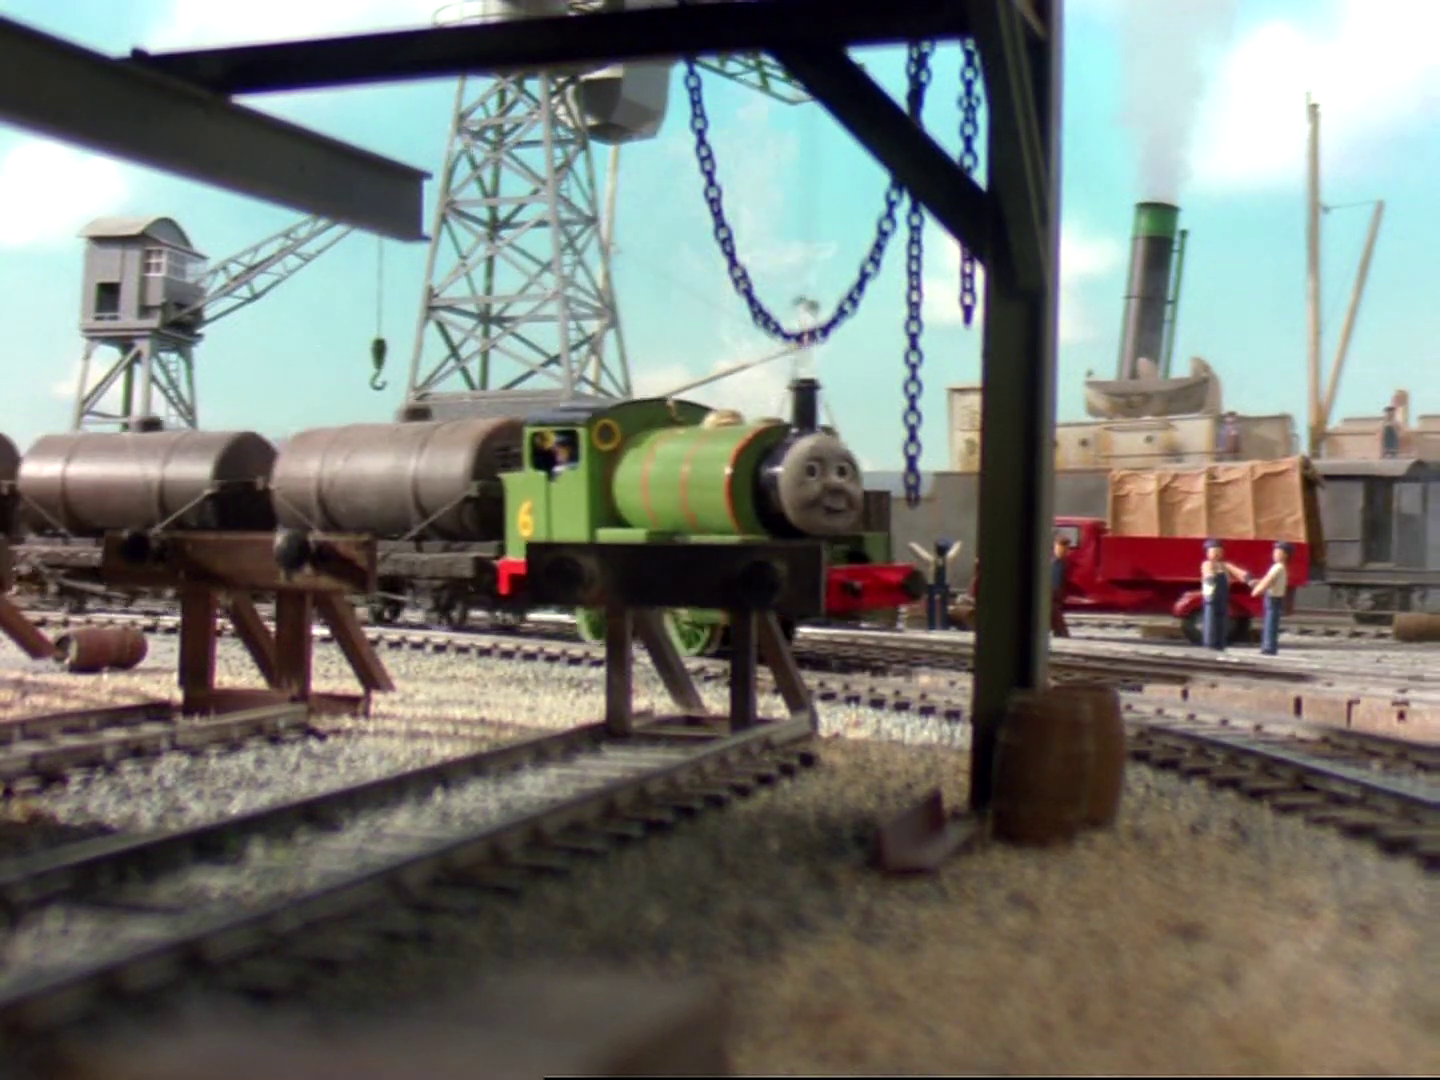 All at Sea (Thomas & Friends episode)/Gallery